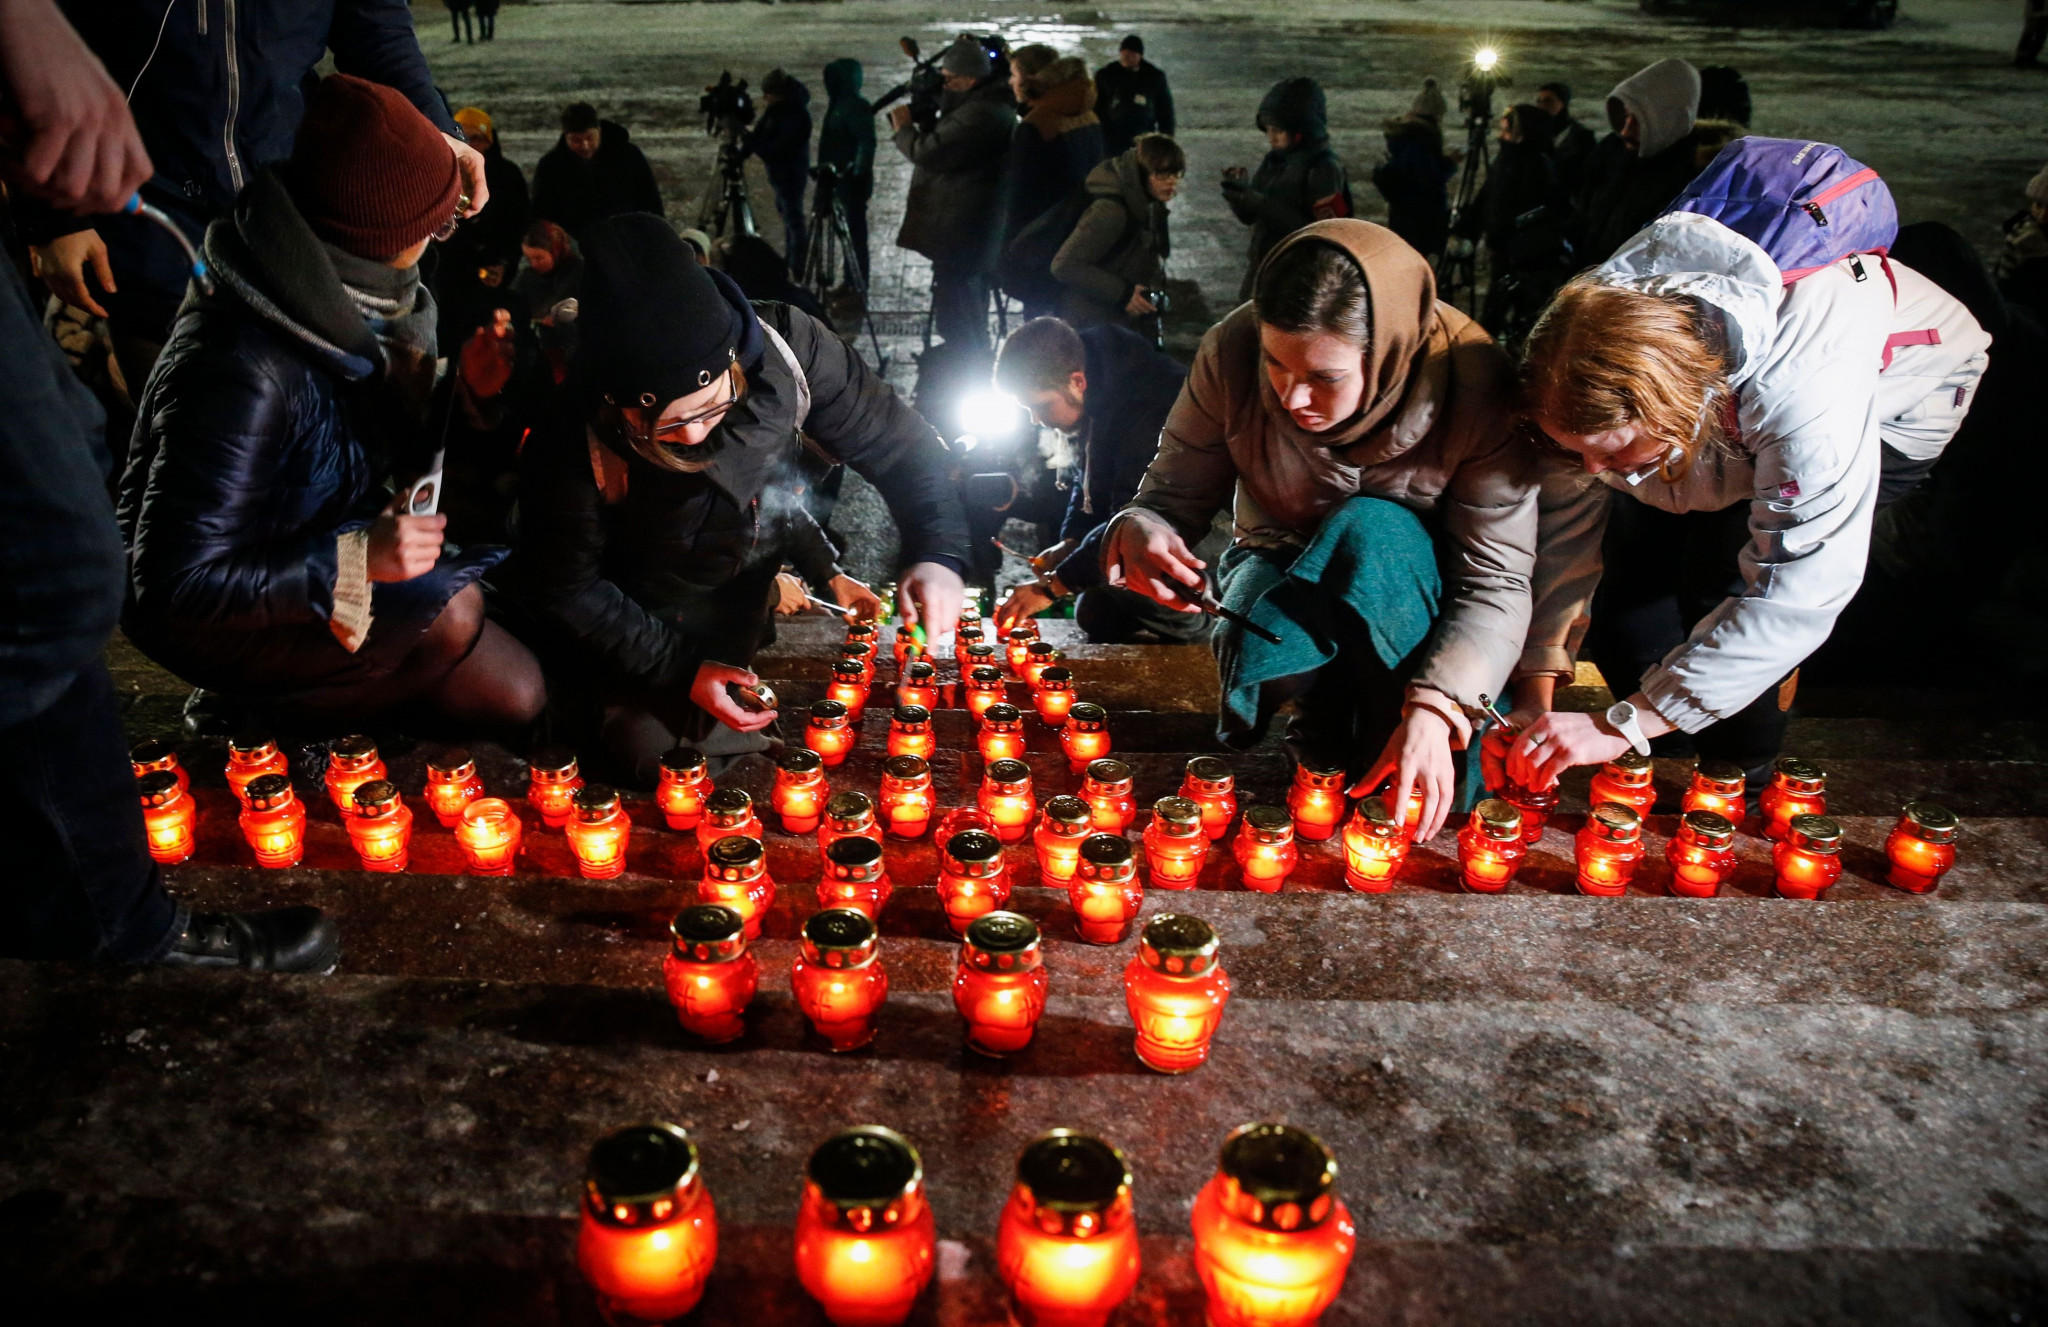 Members of the public place candles in front of the Cathedral of Christ the Saviour in Moscow ©Getty Images